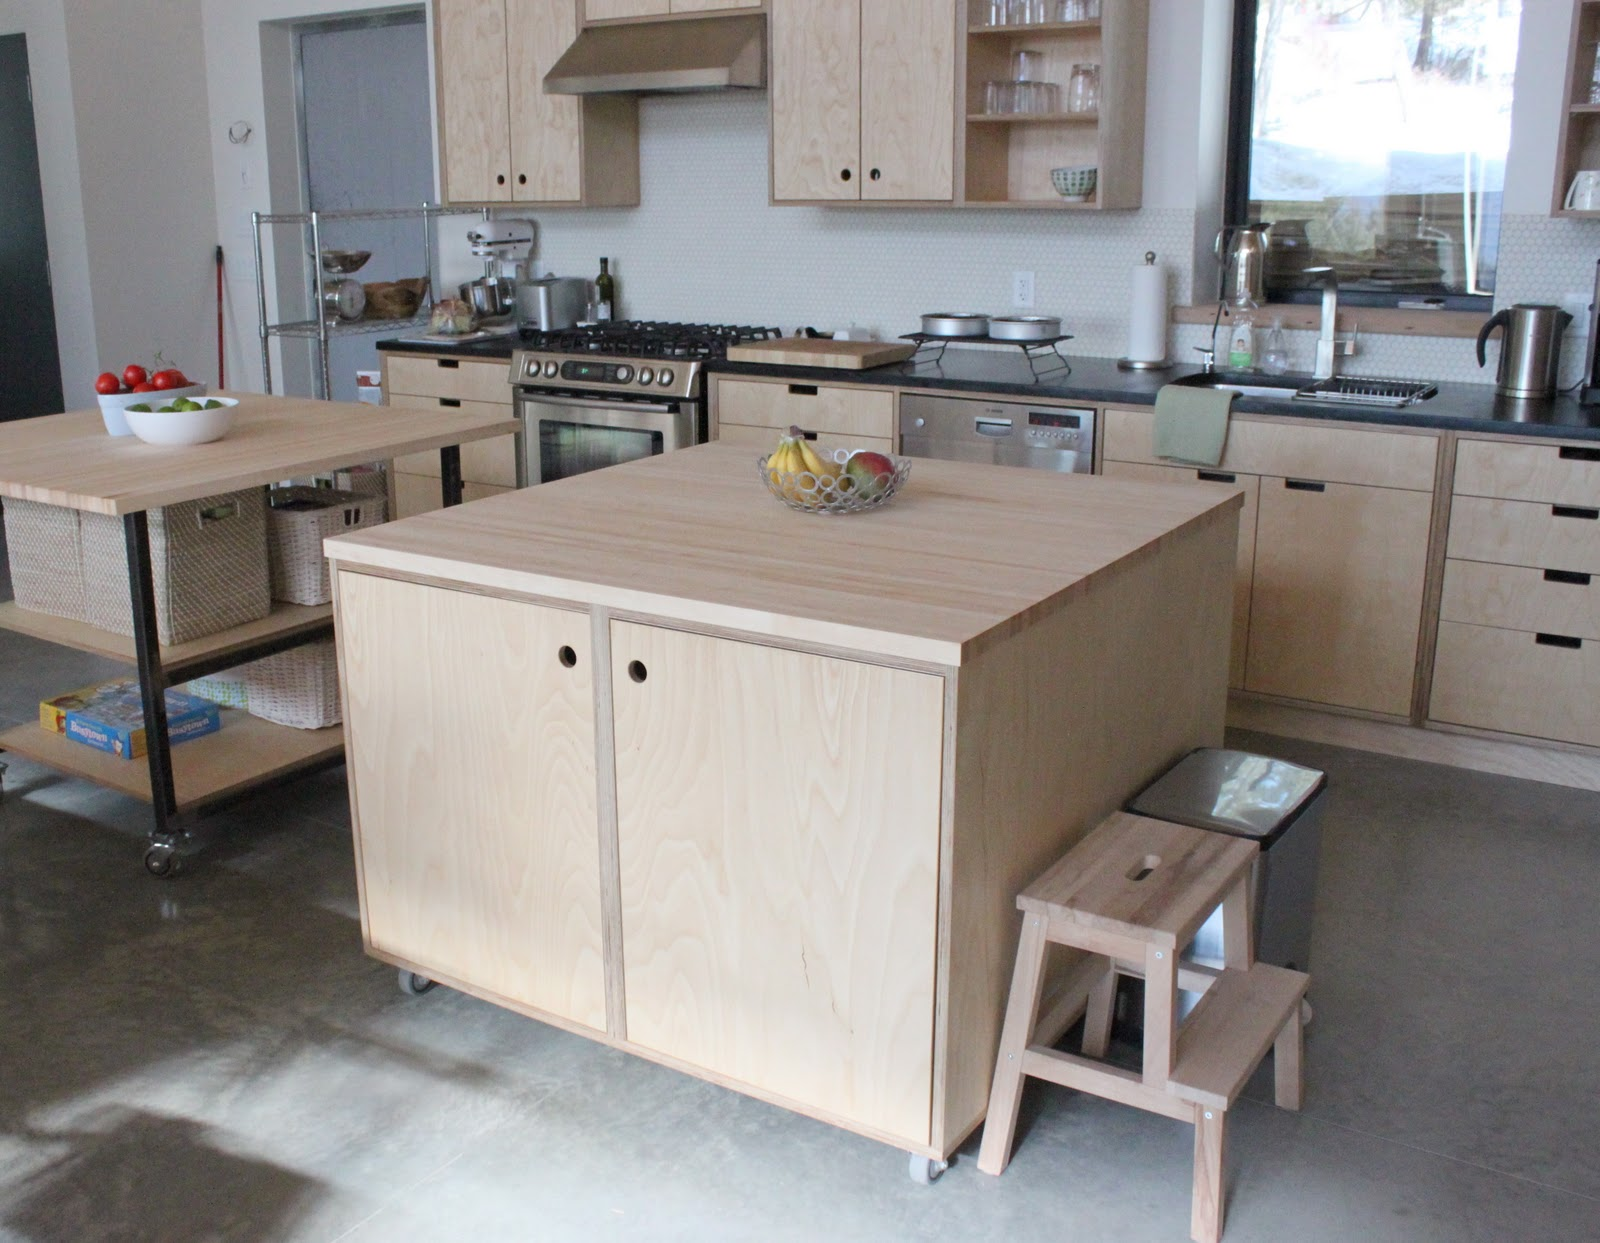 plywood kitchen cabinets black granite countertops 1000 43 images about design on pinterest furniture